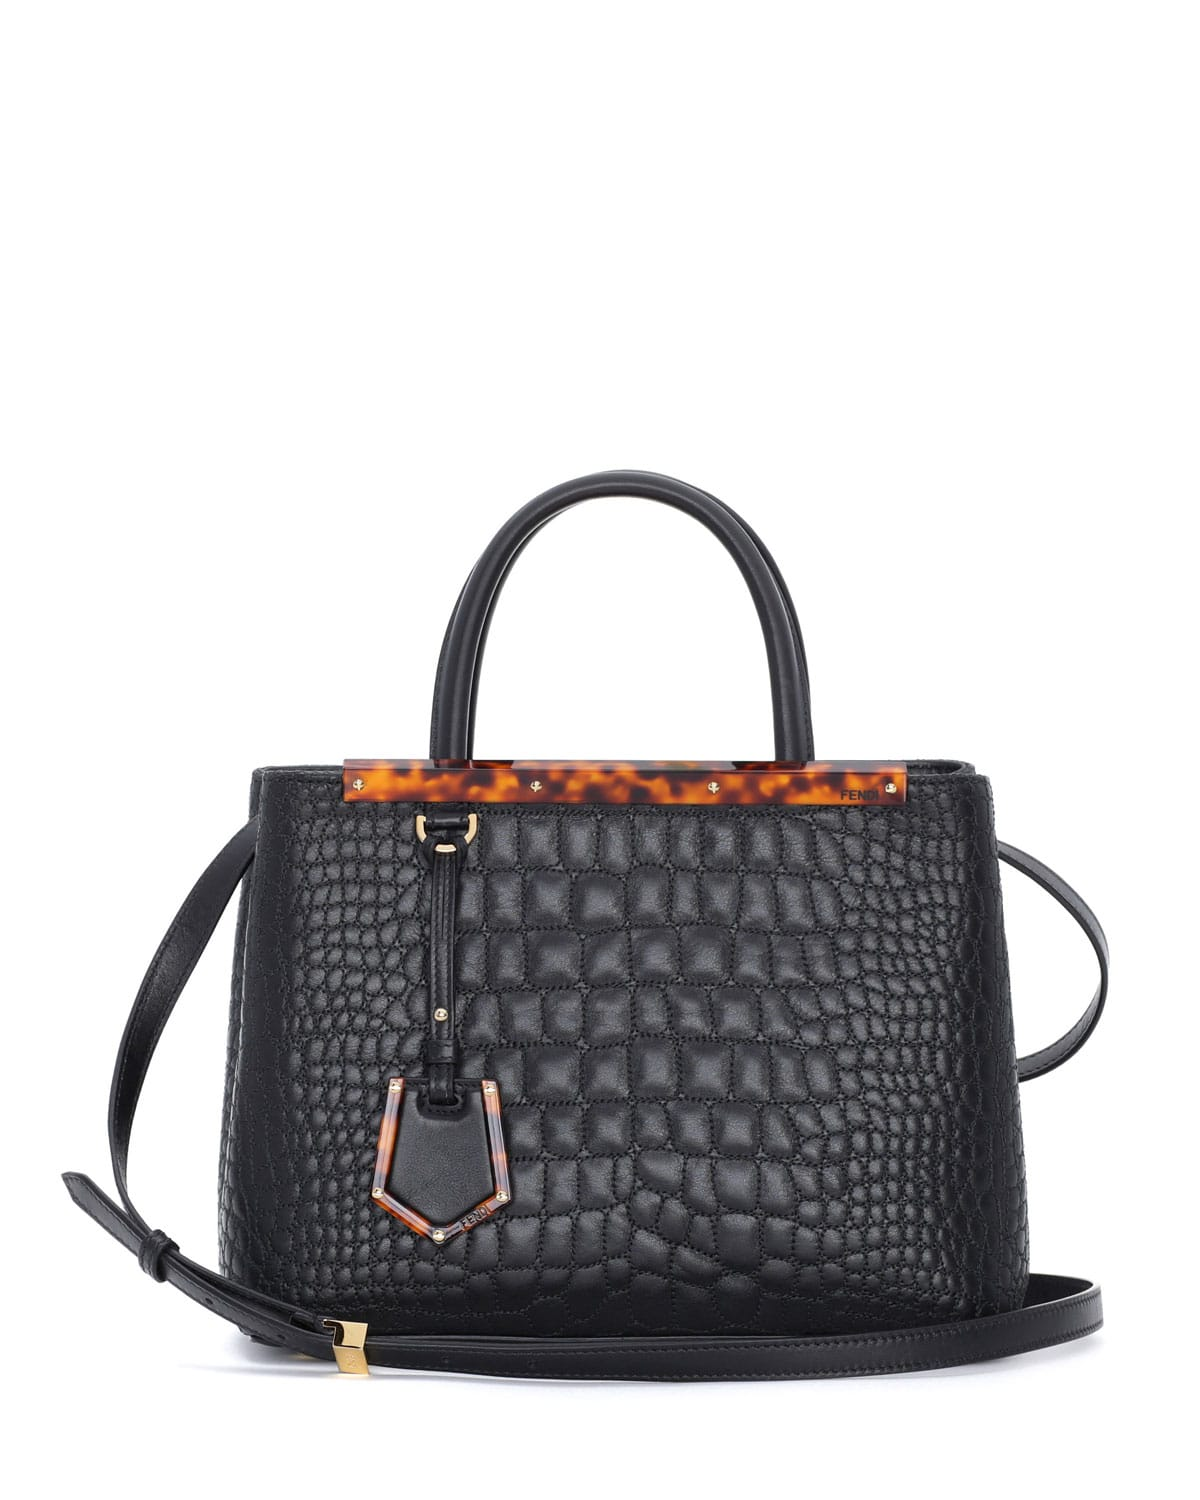 Fendi Pre-Fall 2014 Bag Collection featuring New Fur ...